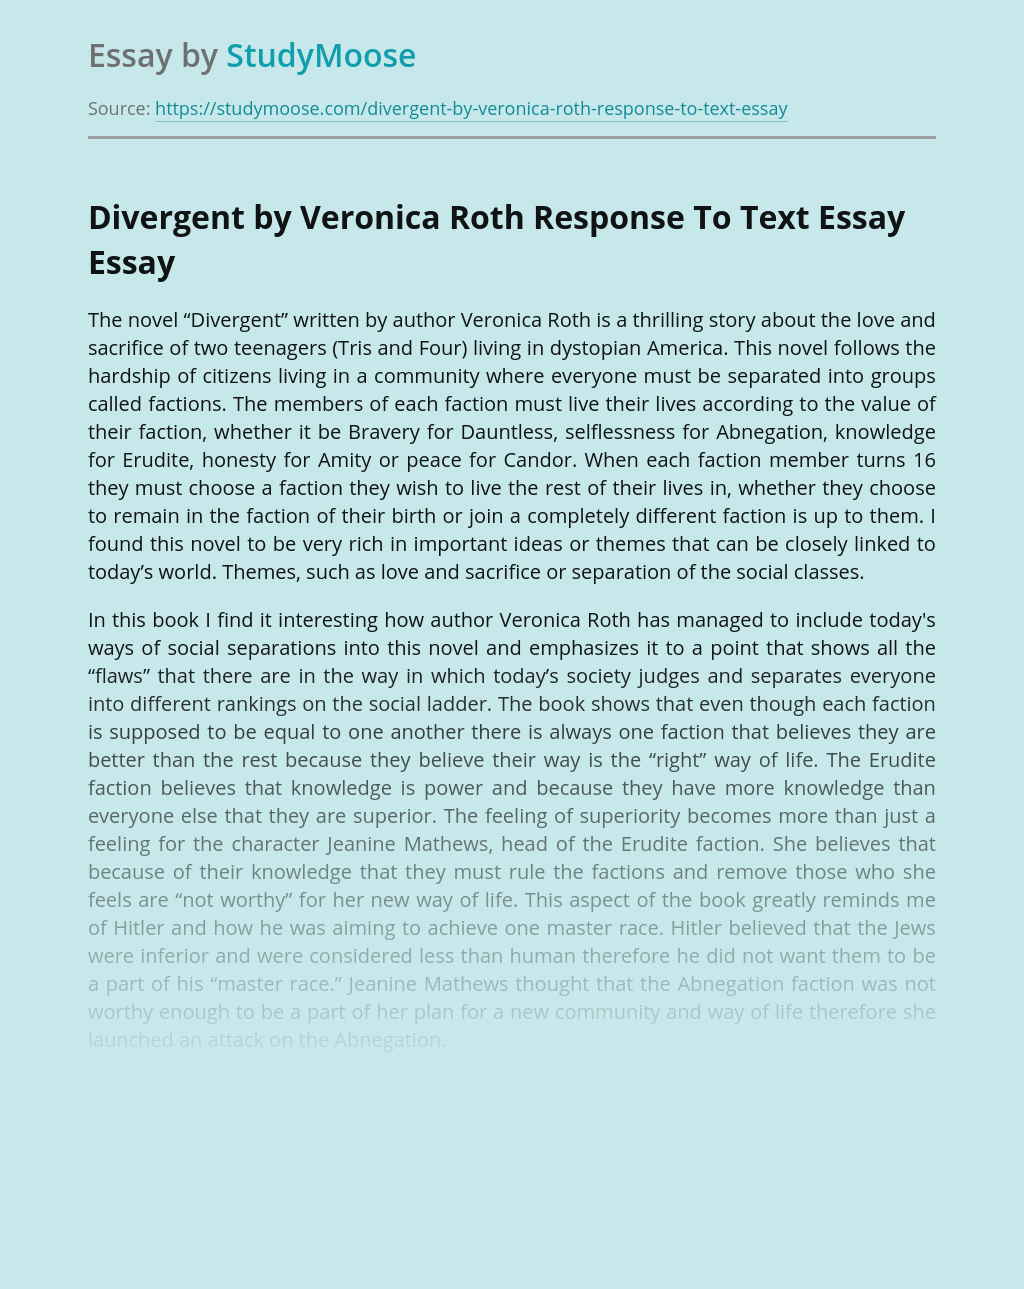 Divergent by Veronica Roth Response To Text Essay